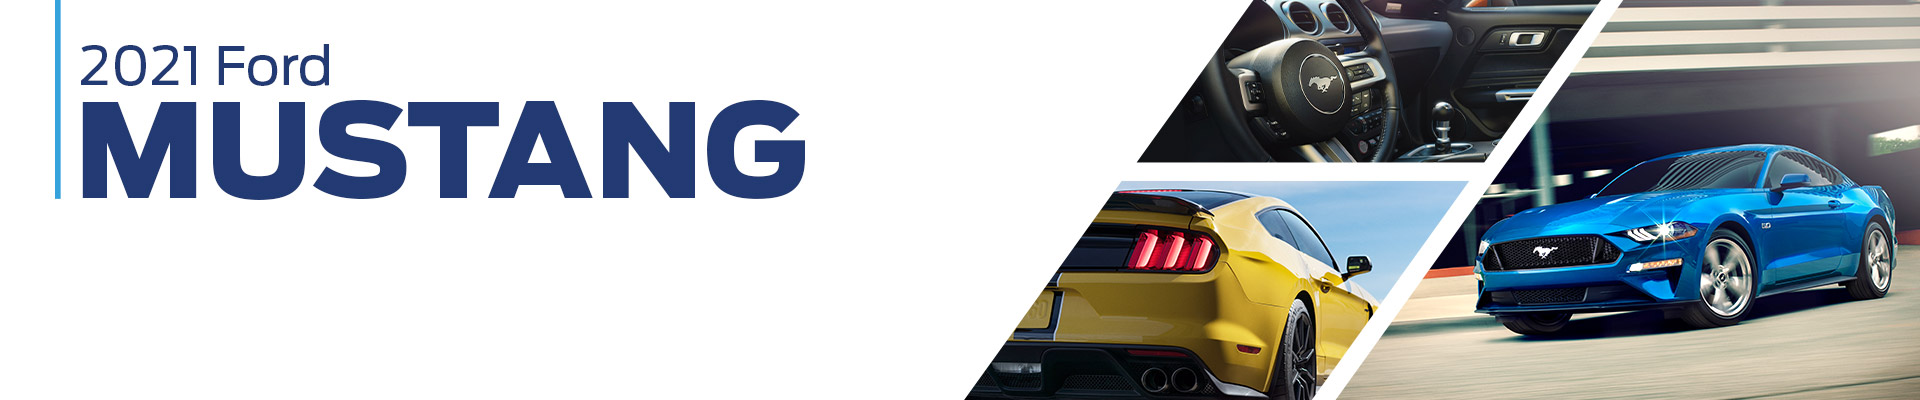 2021 Ford Mustang - Sun State Ford - Orlando, FL